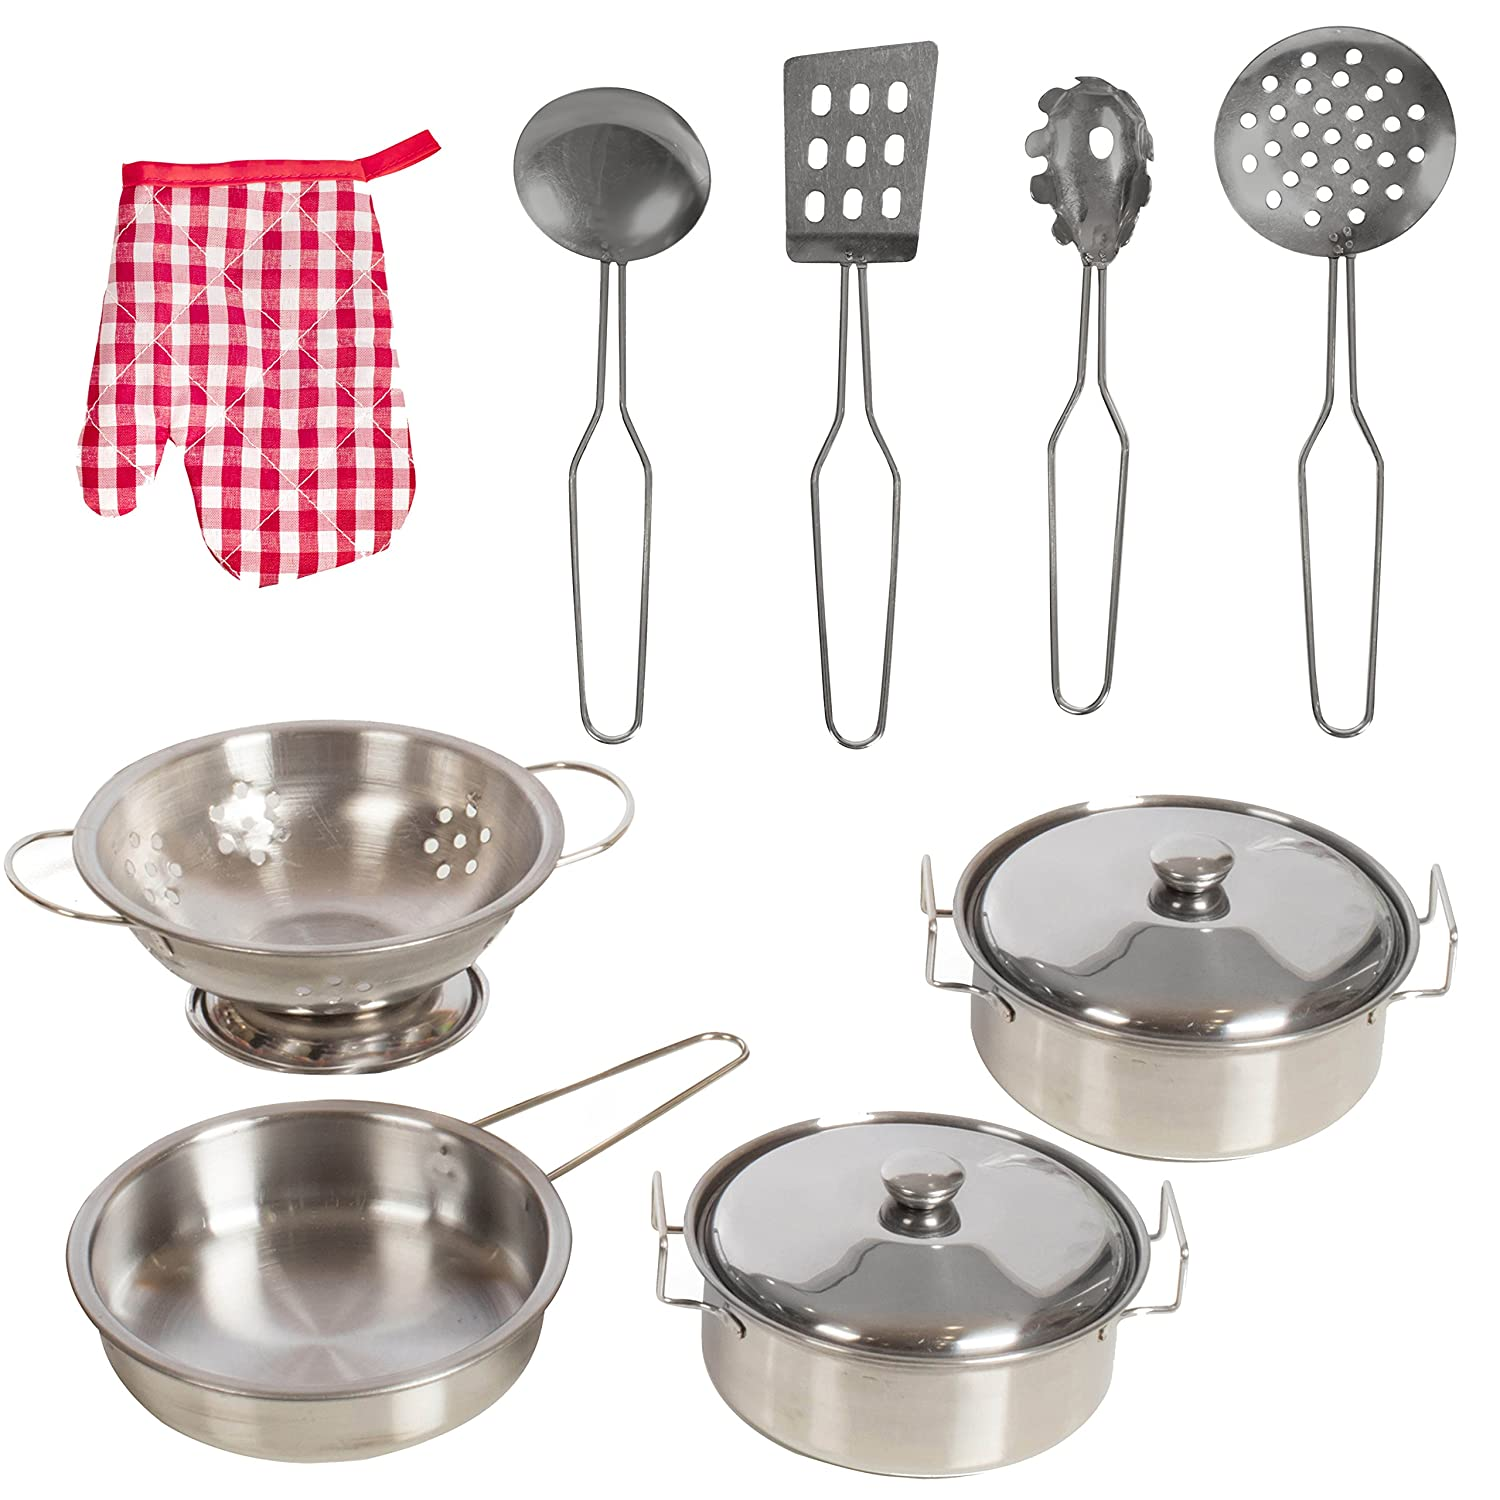 IQ Toys 11 Piece Durable Stainless Steel Pots, Pans, Strainer and Utensil Cookware Set for Pretend Play